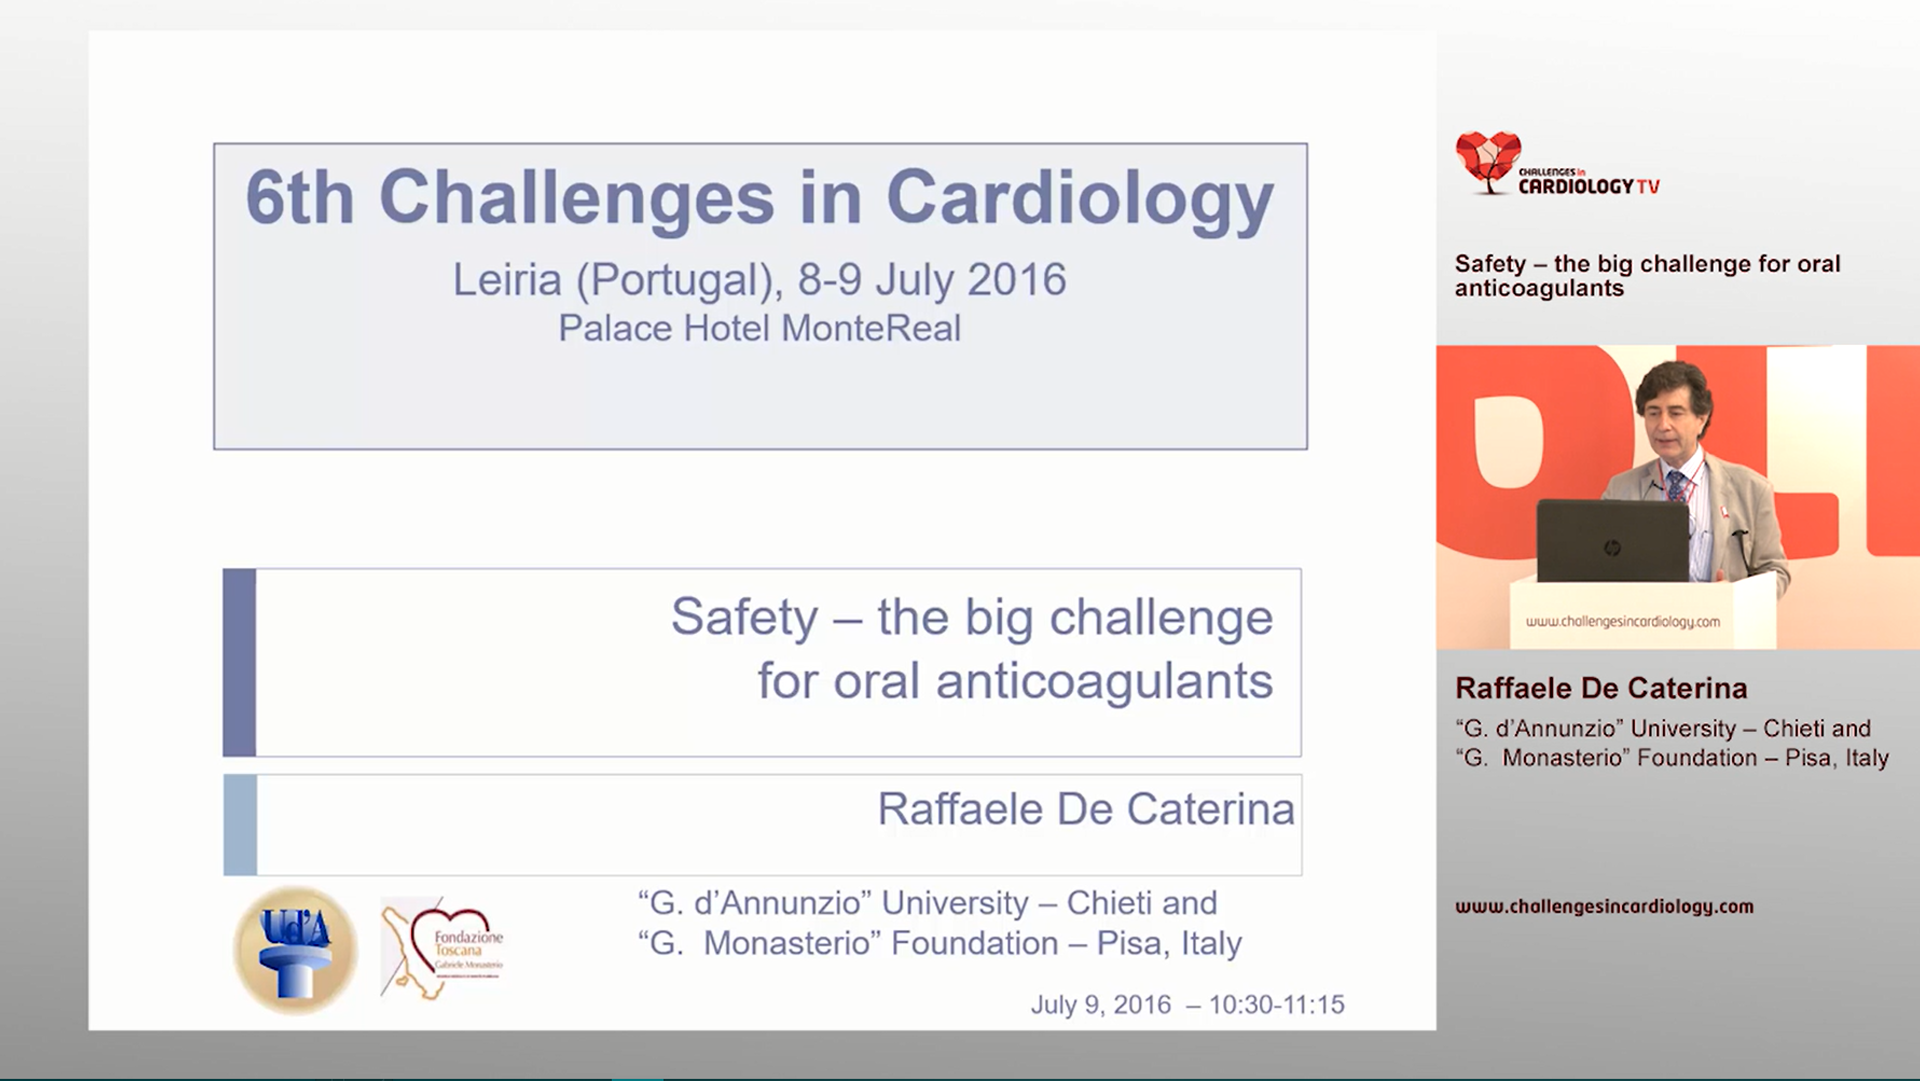 Safety - the big challenge for oral anticoagulants - Raffaele De Caterina